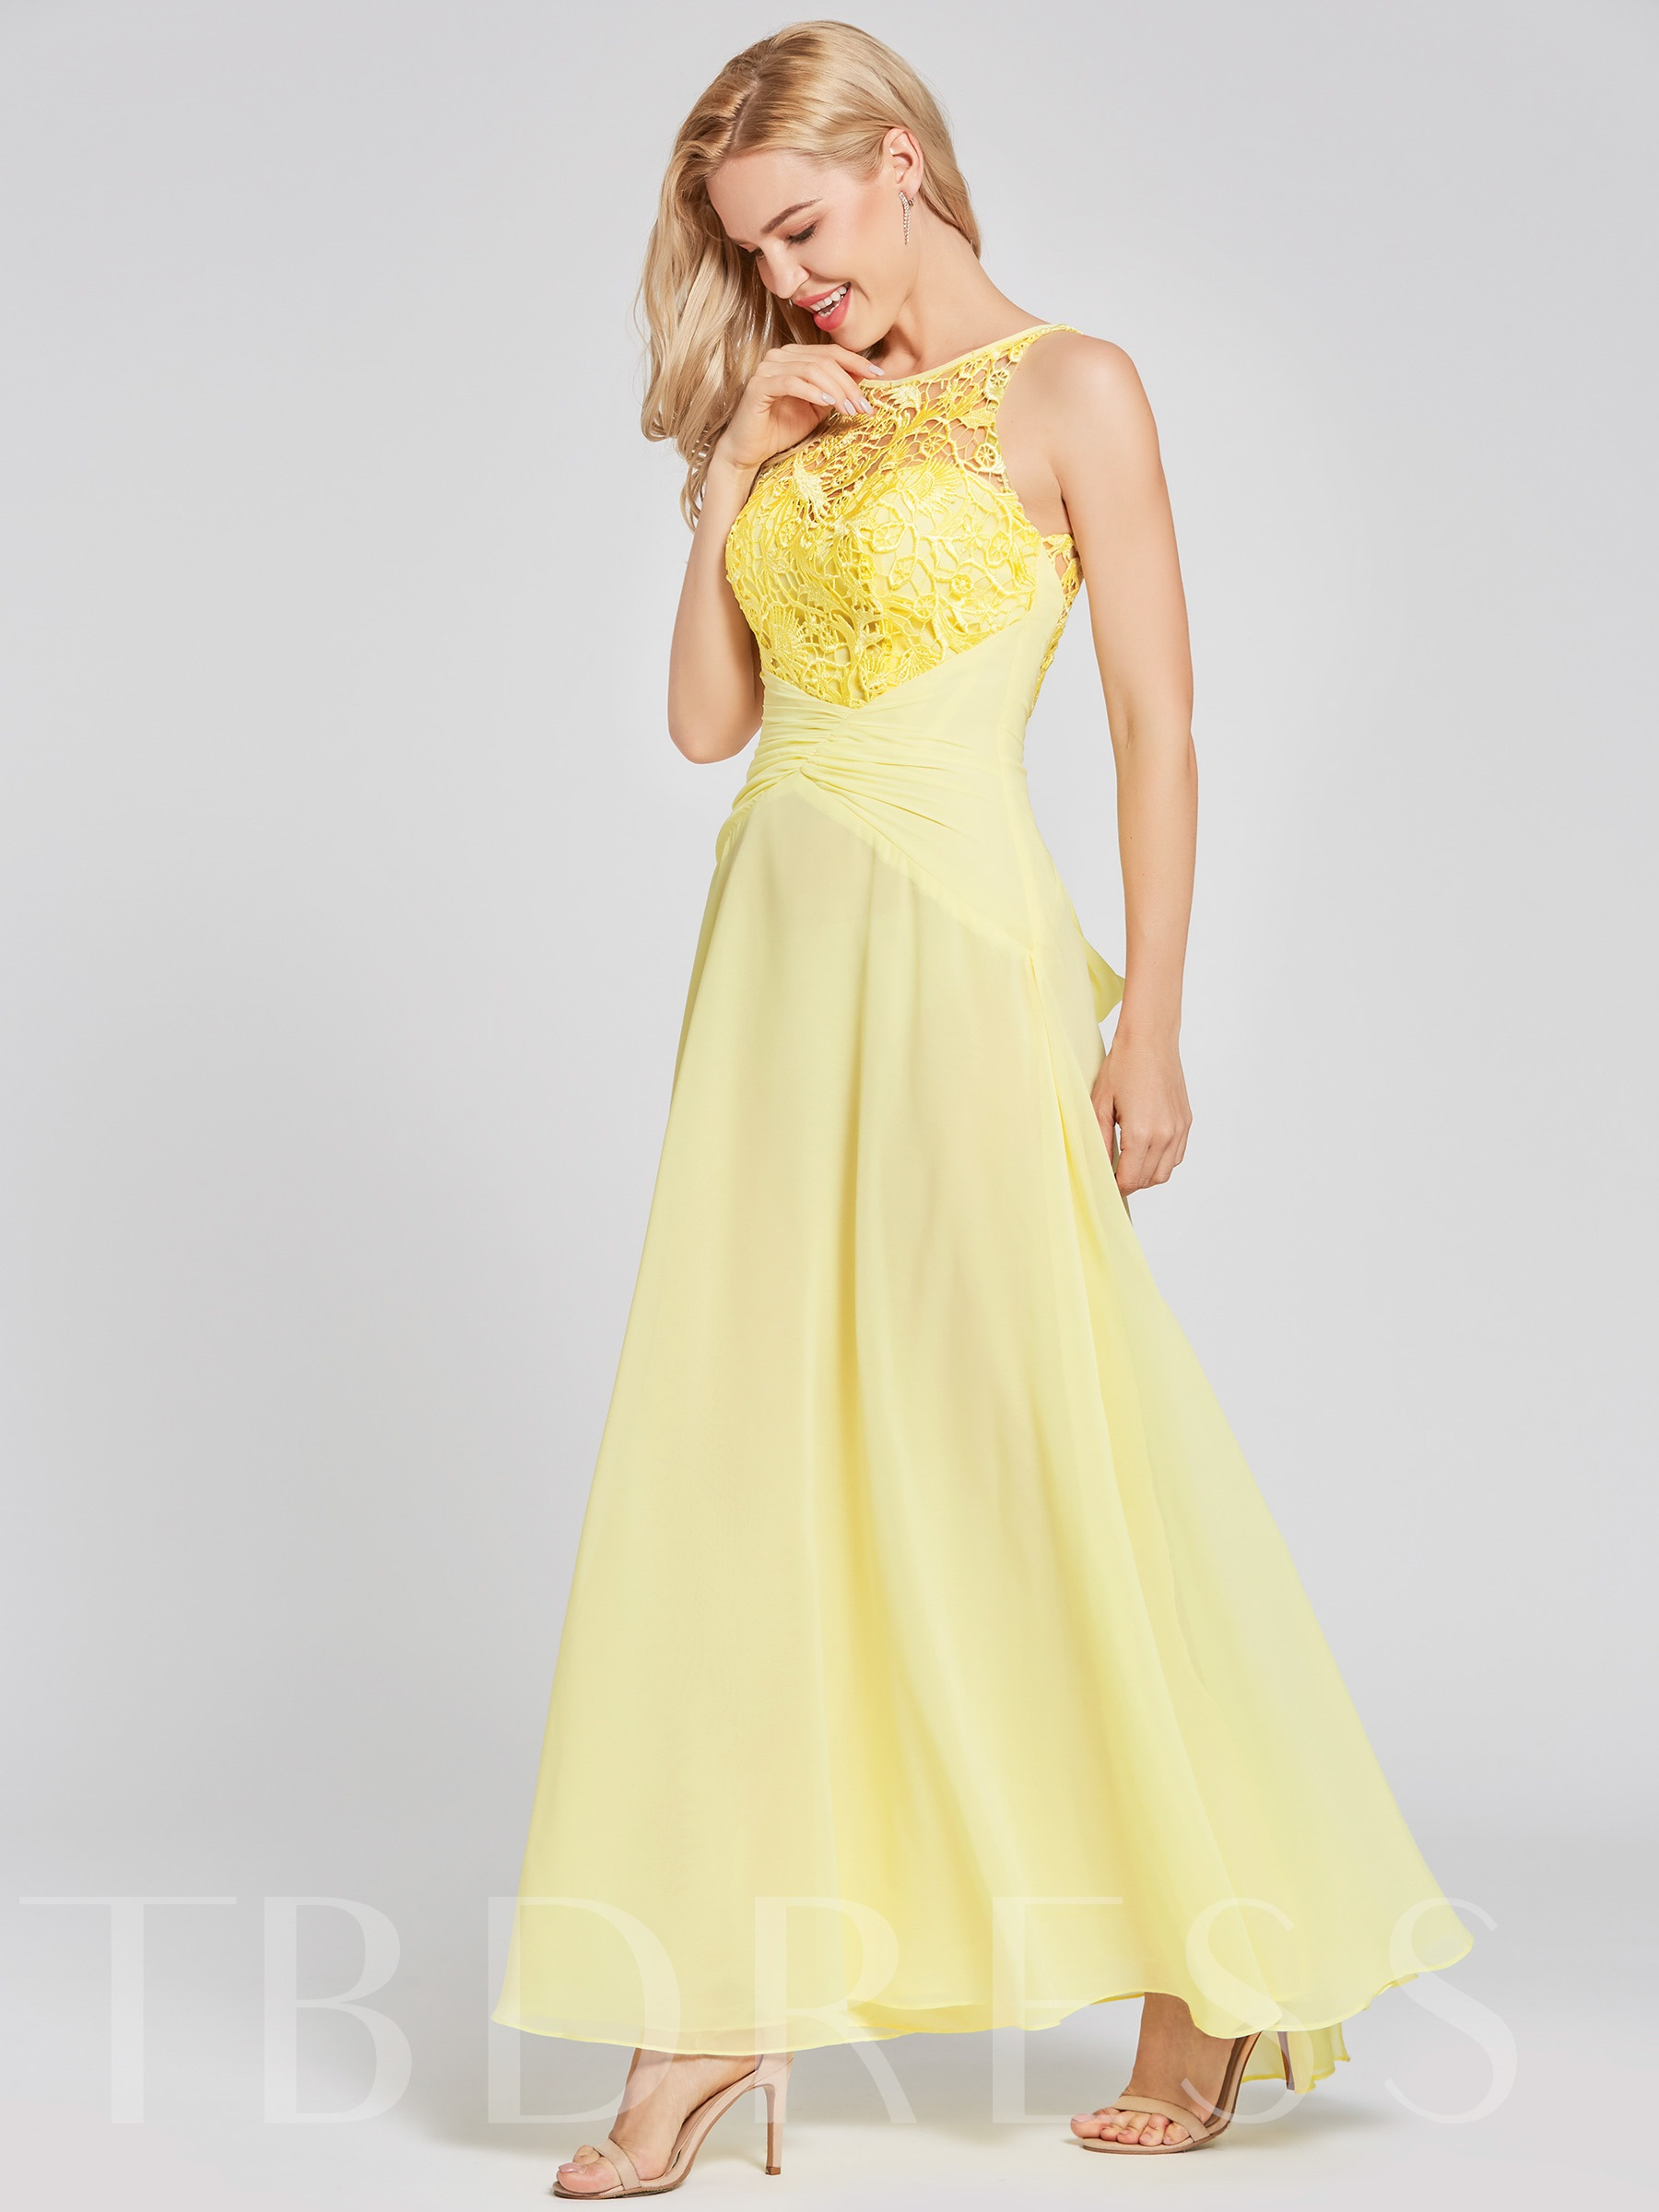 Image of Scoop Neck Lace Appliques A-Line Prom Dress